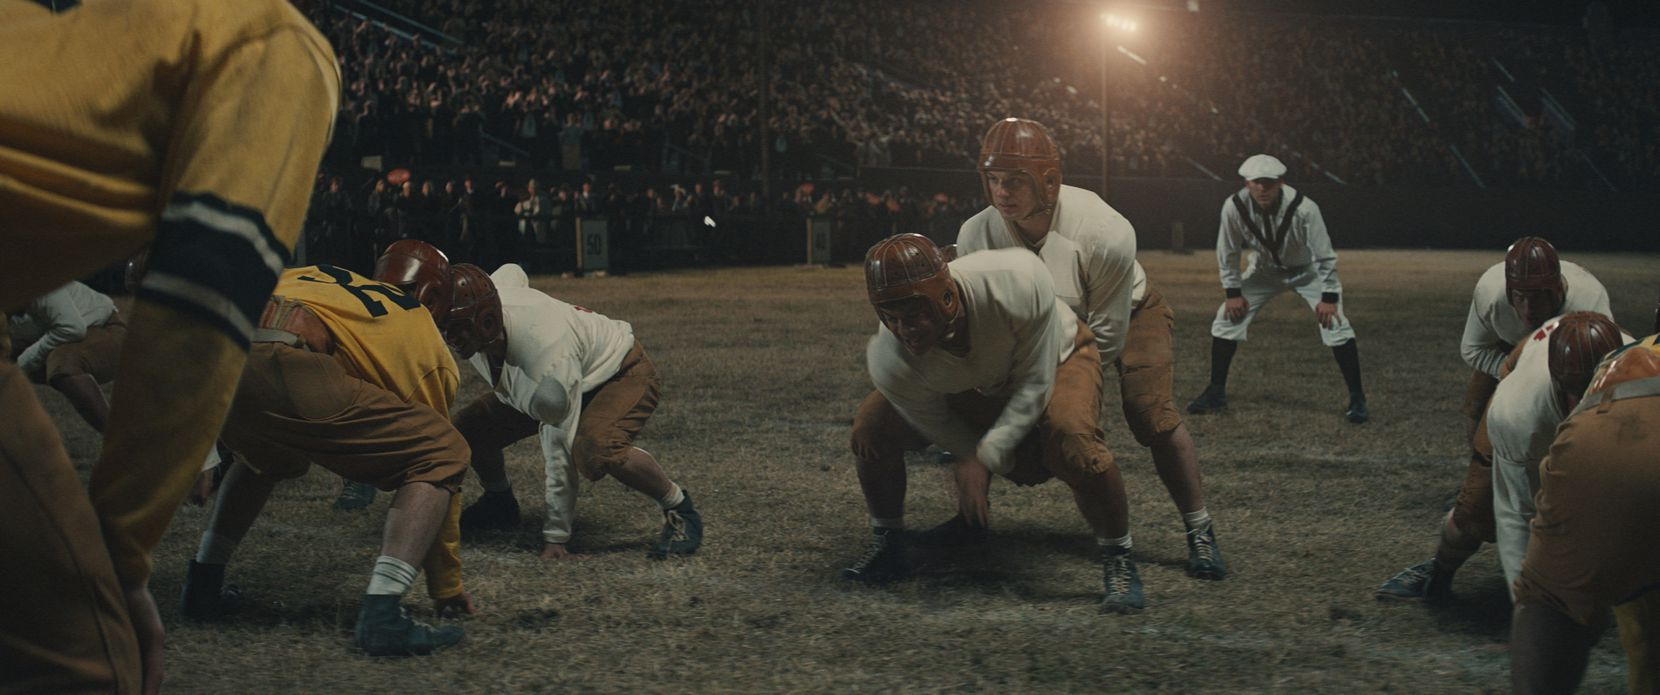 """The Mighty Mites line up on offense against the Amarillo Sandies in a scene from the forthcoming about Texas high school football titled """"12 Mighty Orphans."""""""